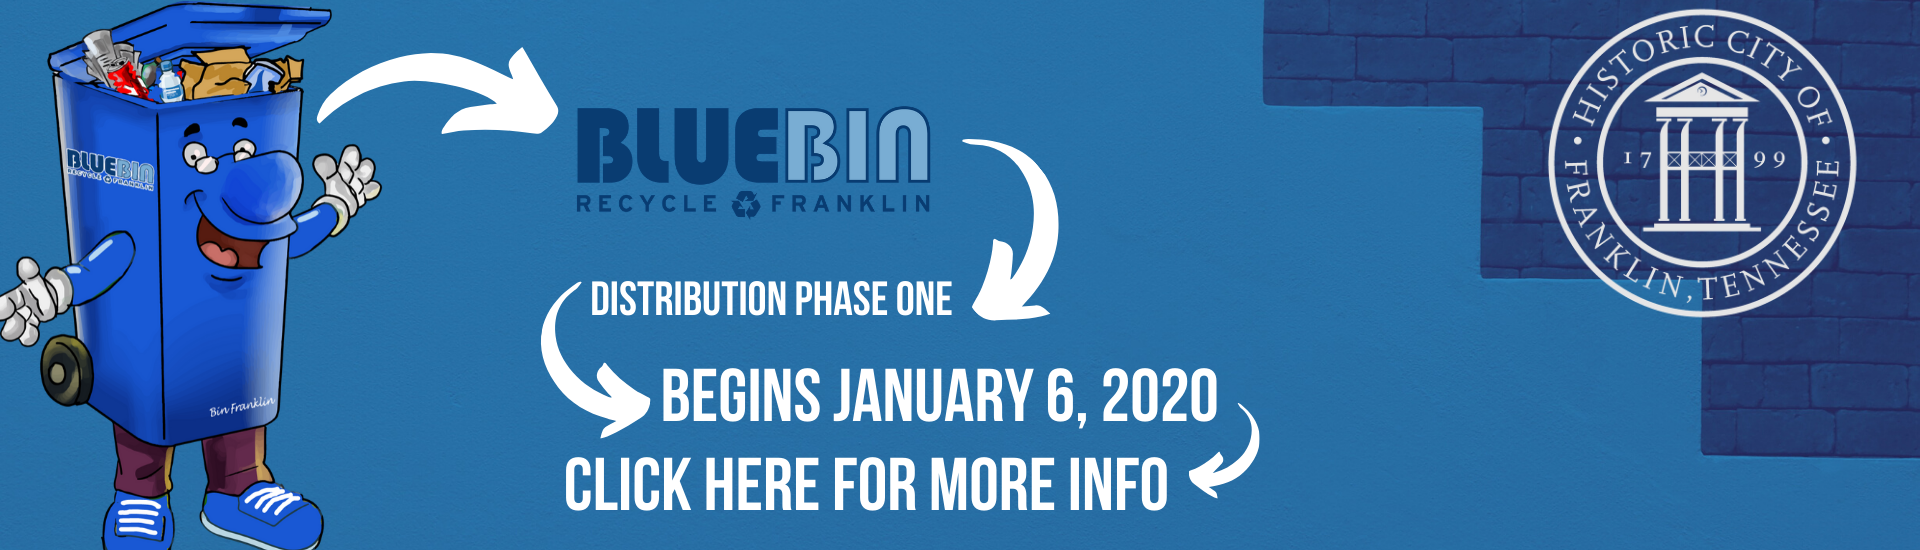 Blue Bin Phase One Starting on January 6, 2020 banner